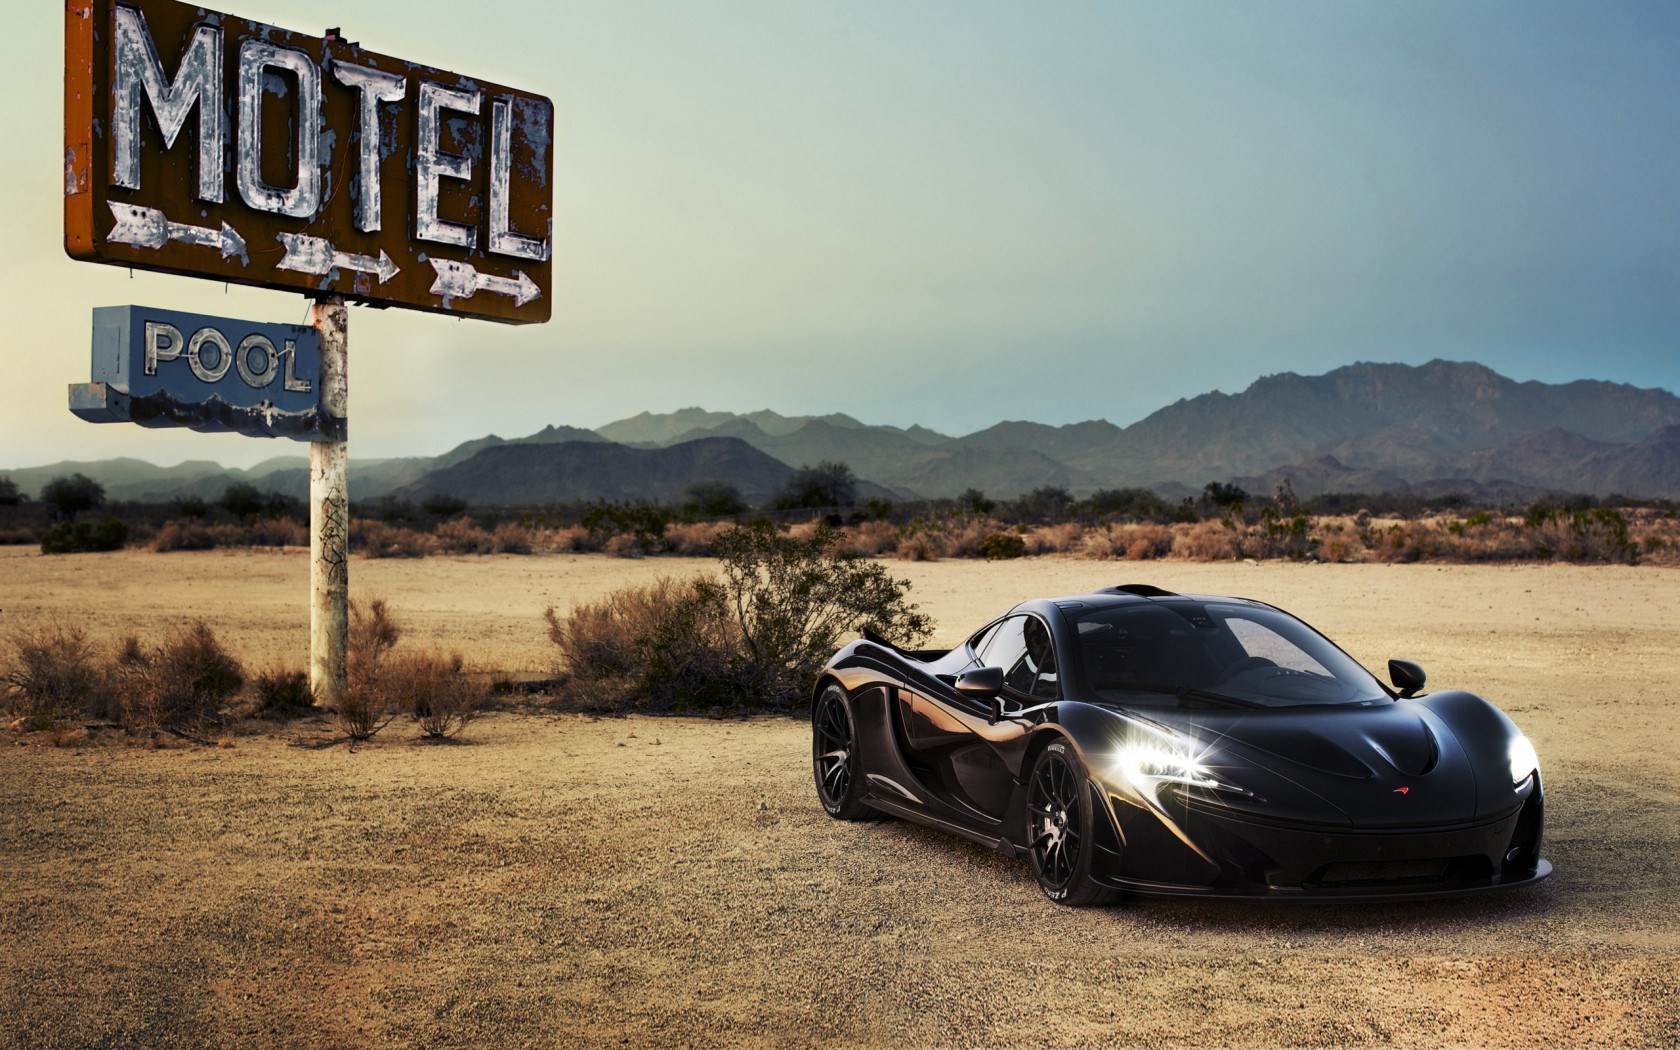 mclaren p1 wallpaper full hd